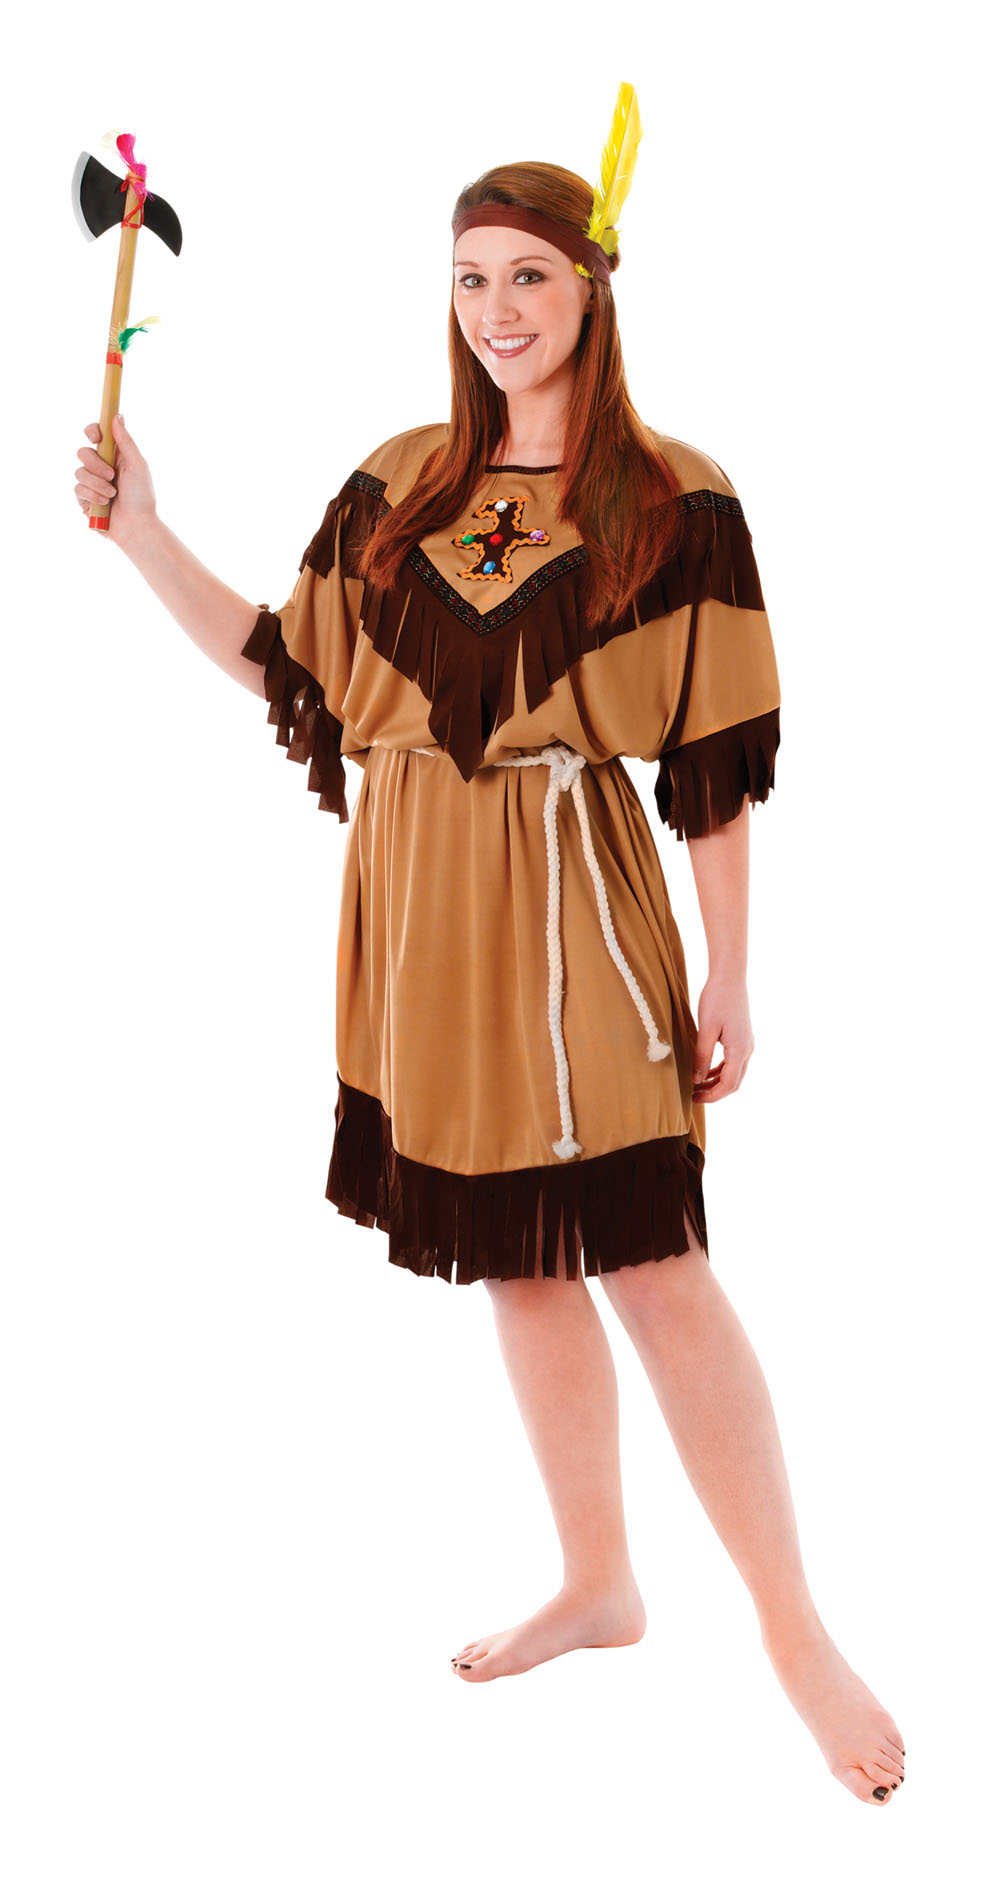 a3de1f751dd2 Ladies American Red Indian Fancy Dress Costume Womens Outfit UK 10-14 |  Ladies | Retail Zone